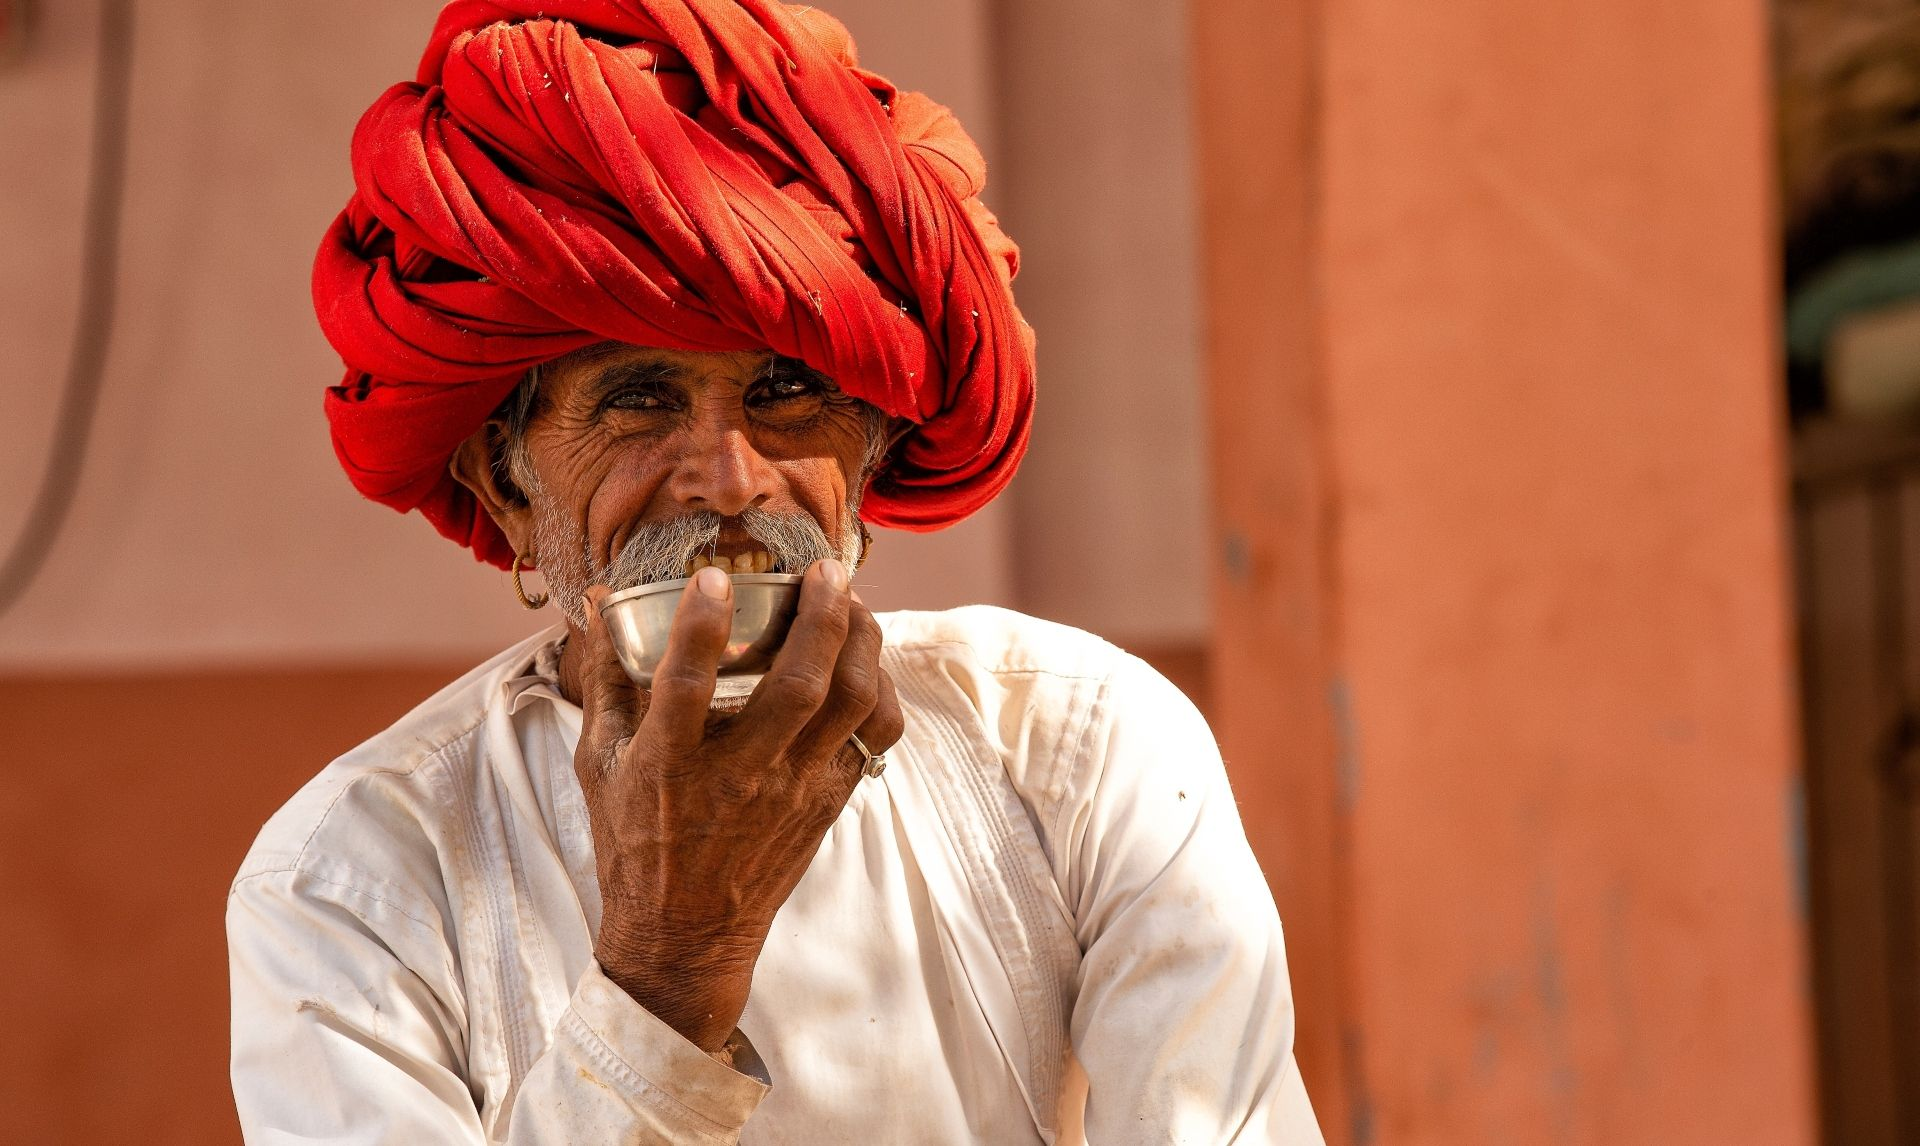 SUJAN Jawai – A local Rabari elder